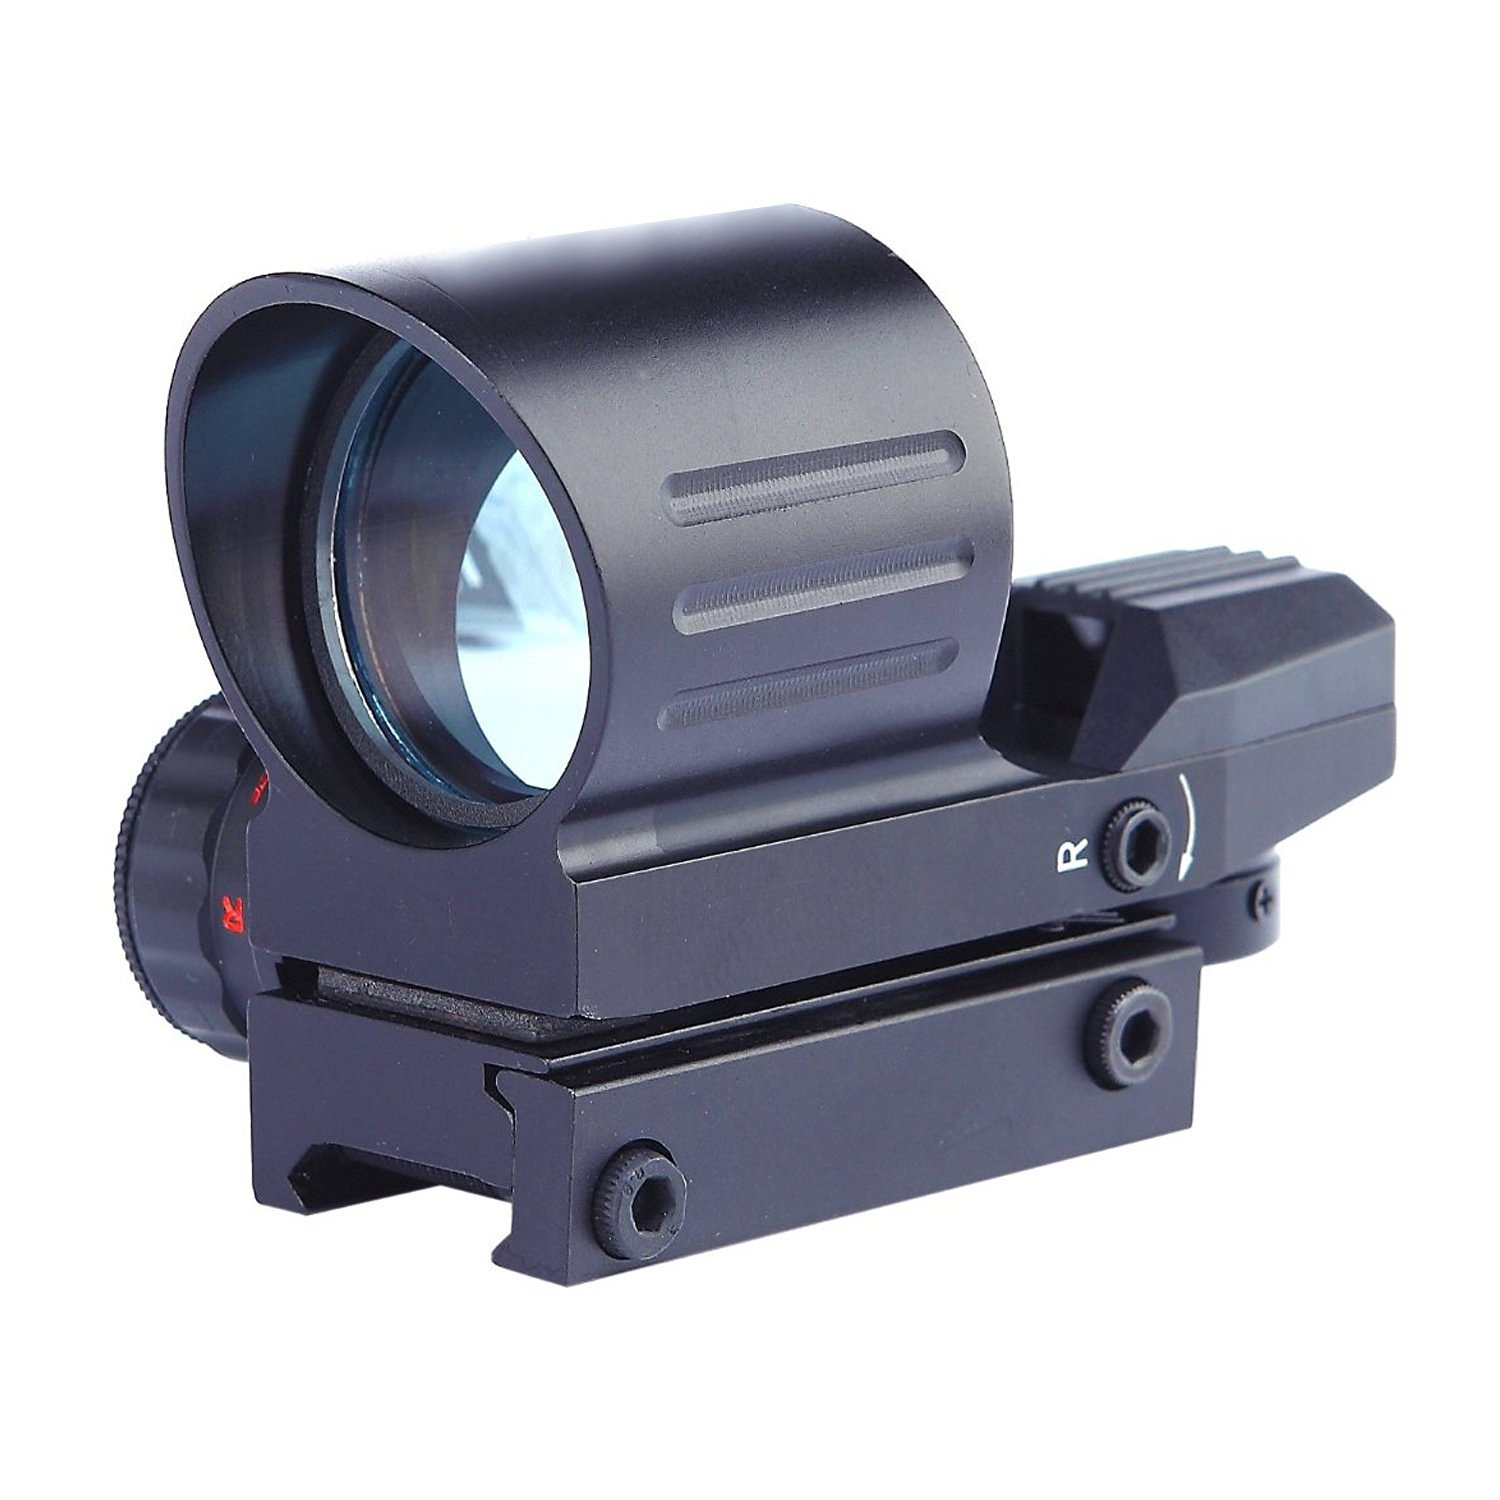 Freehawk Airsoft scope/Gun scope/Gun sights/Starter Packs/Scope Sight Red Dot Reflex sight- Reflex sight optic and substitute for holographic red dot sights